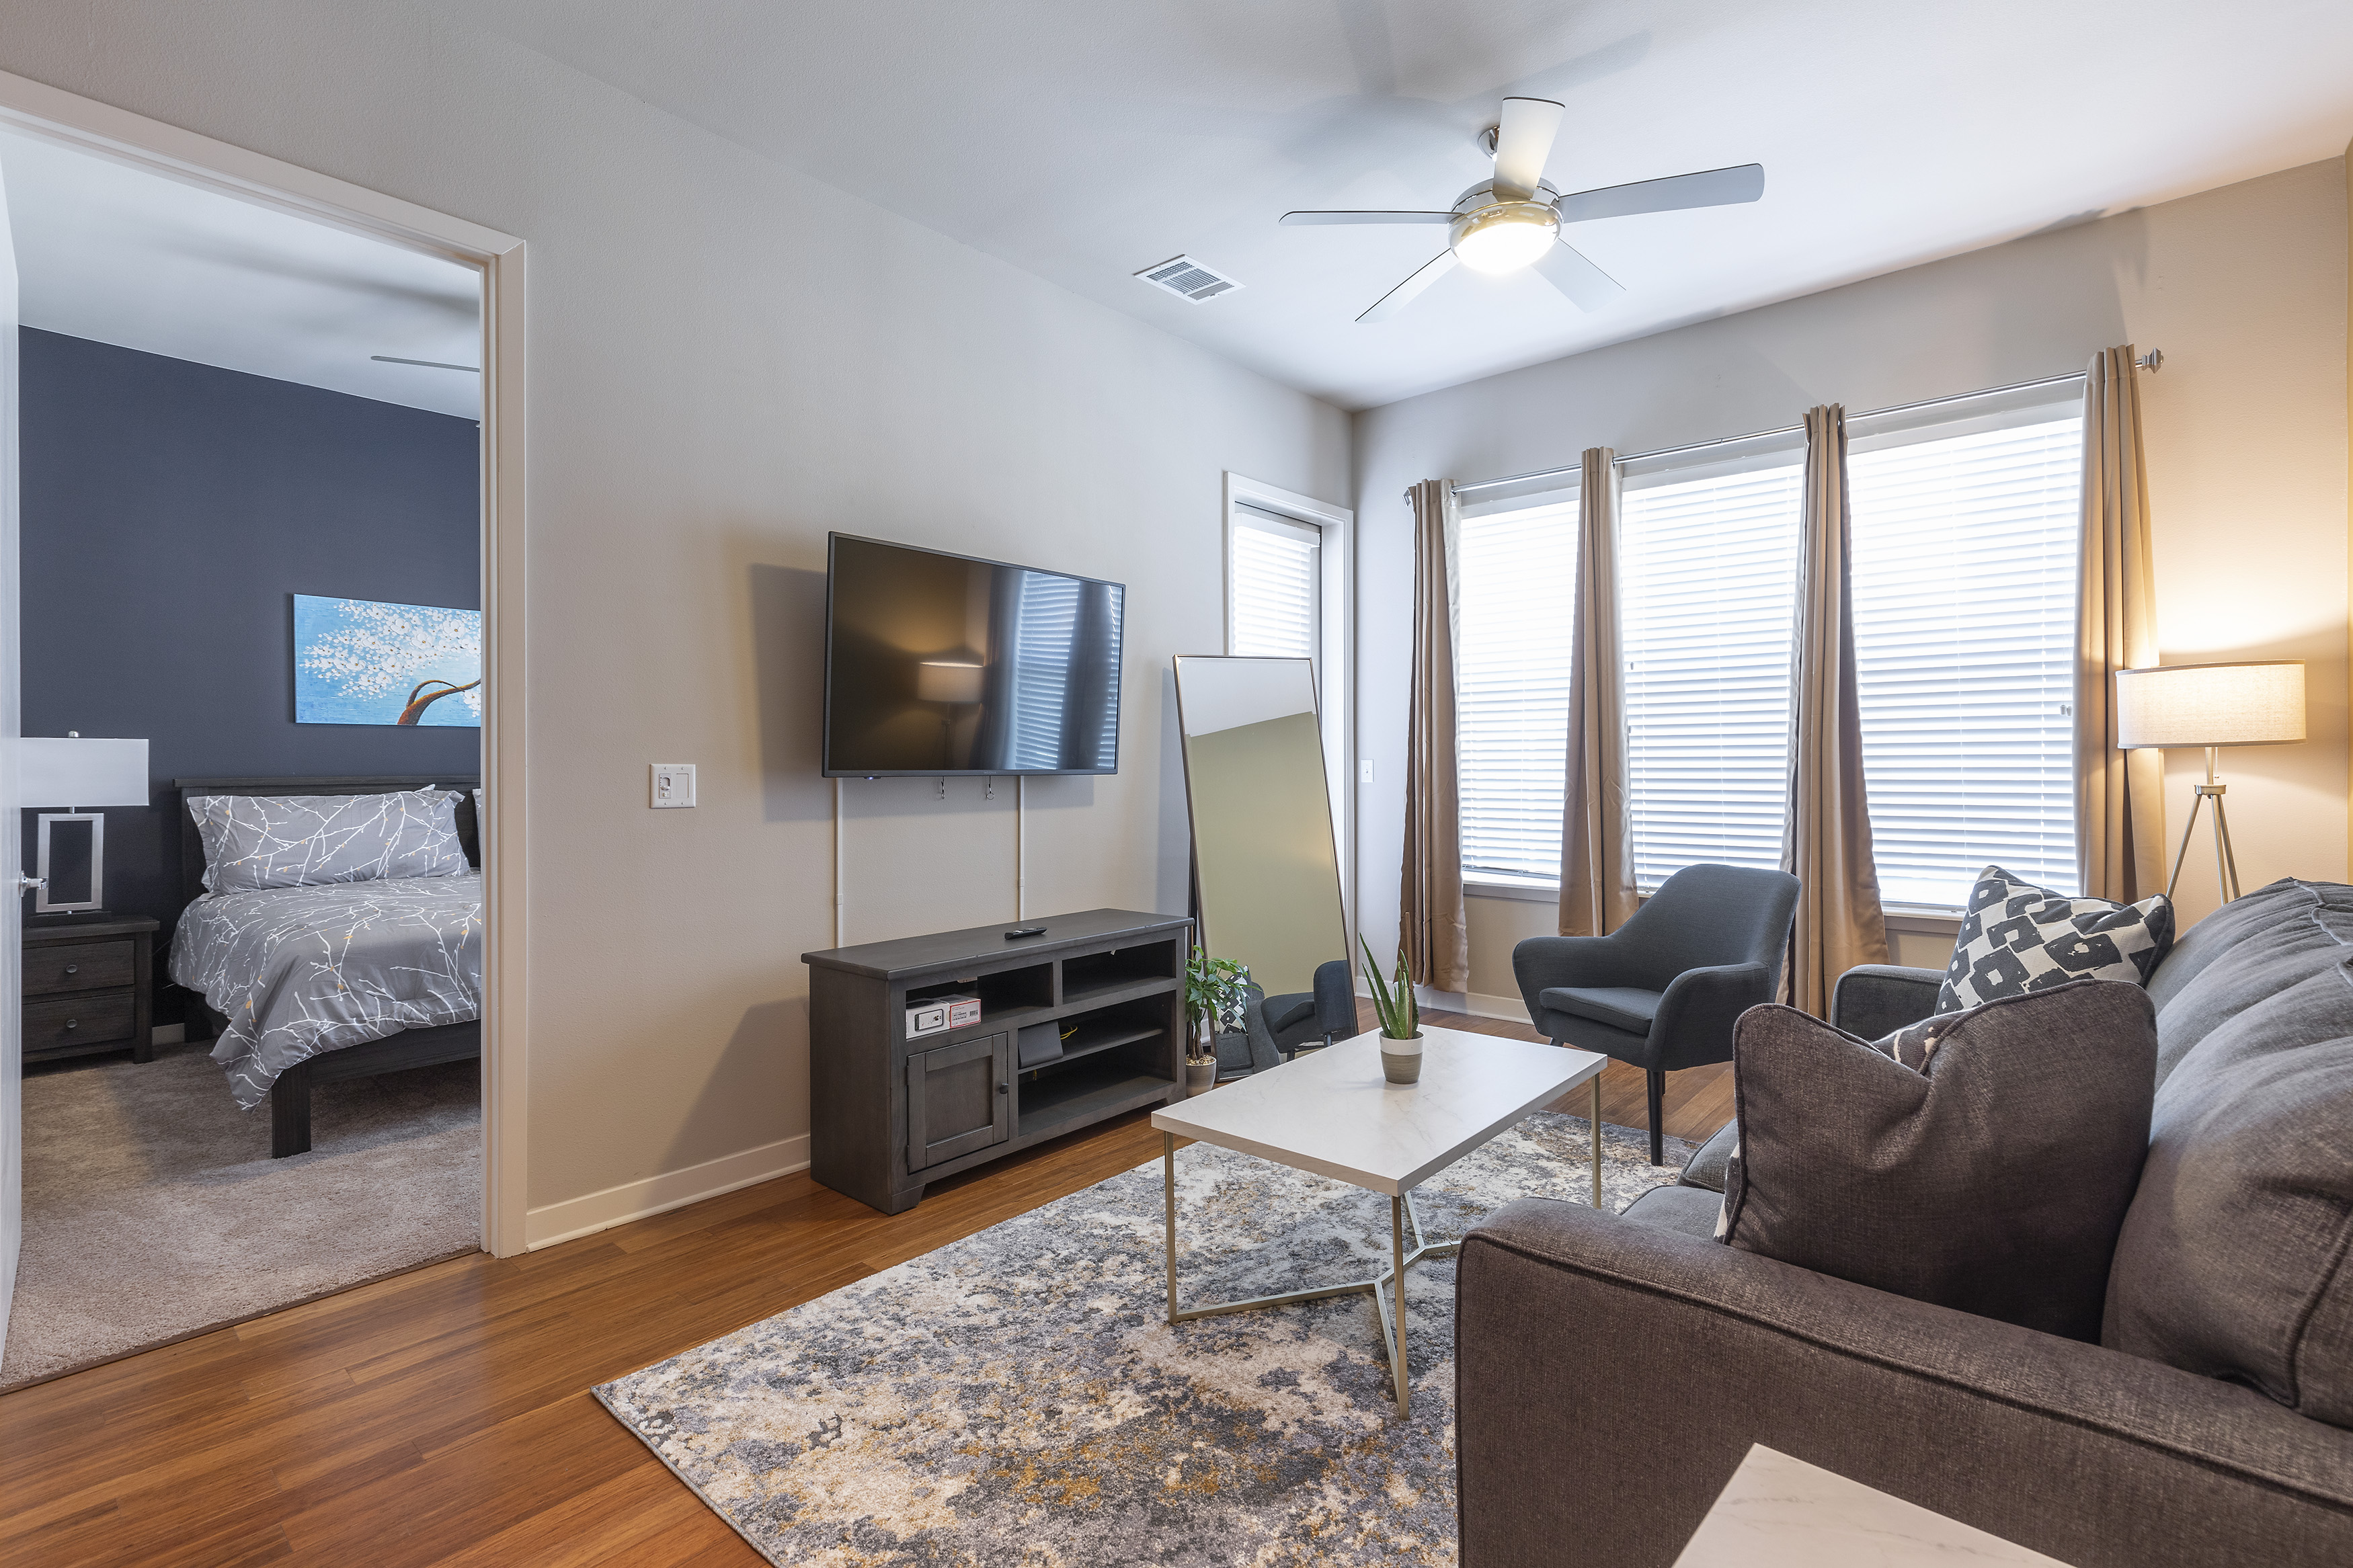 Apartment LUXURIOUS KING SIZED BED MED CENTER FULLY EQUIPPED CONDO photo 21440866